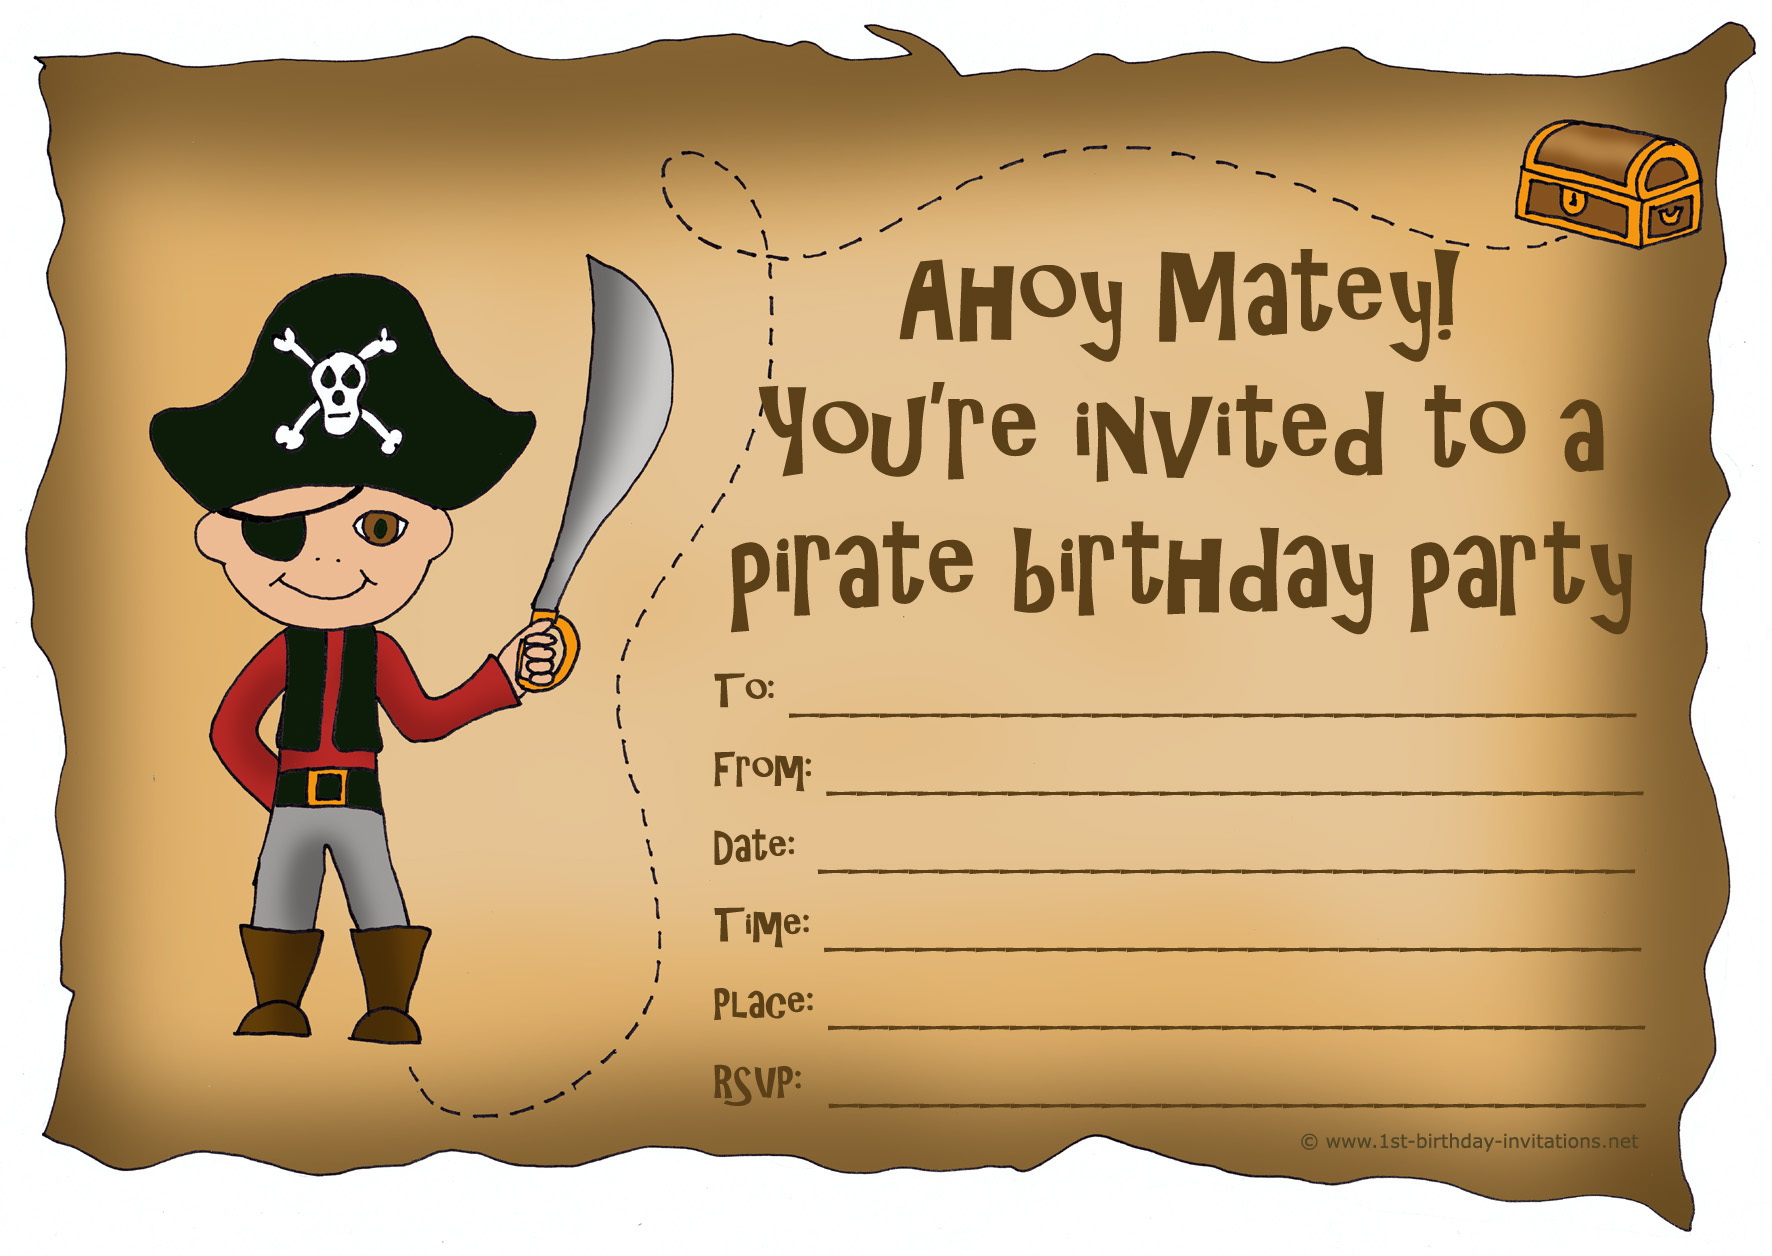 pirate birthday party invitation template free ; pirate-birthday-invitations-and-elegant-invitations-fitting-aimed-at-giving-pleasure-to-your-Birthday-Invitation-Templates-19